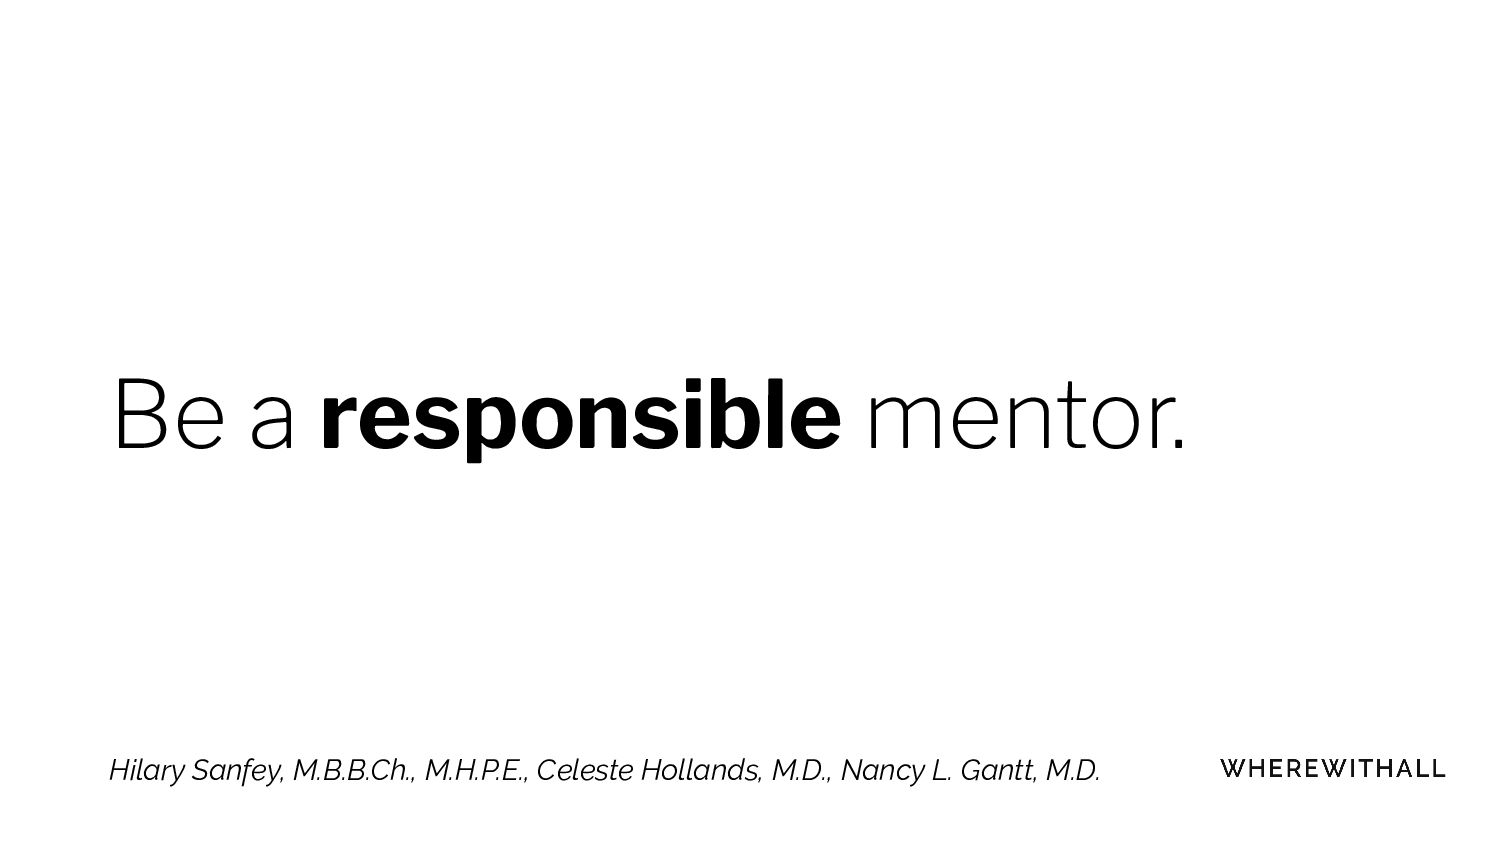 It's okay to end a mentor relationship Hilary S...